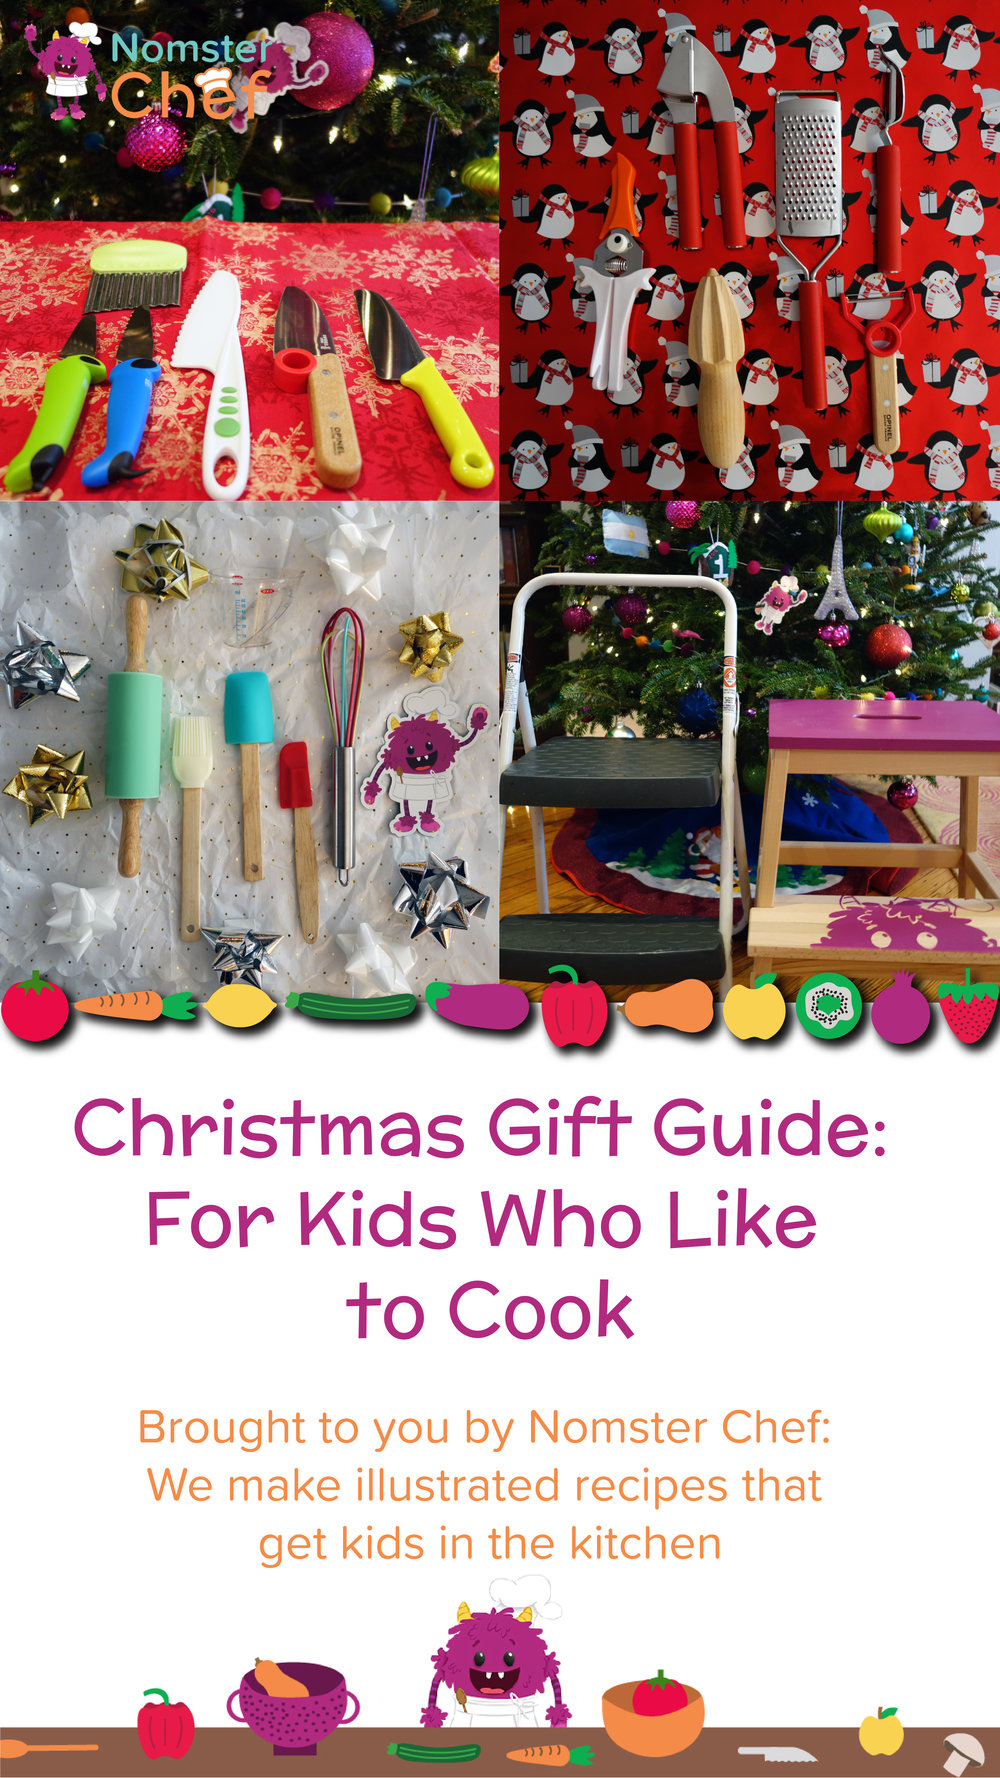 Christmas Gift Guide for Kids who like to cook - Nomster Chef-01.jpg